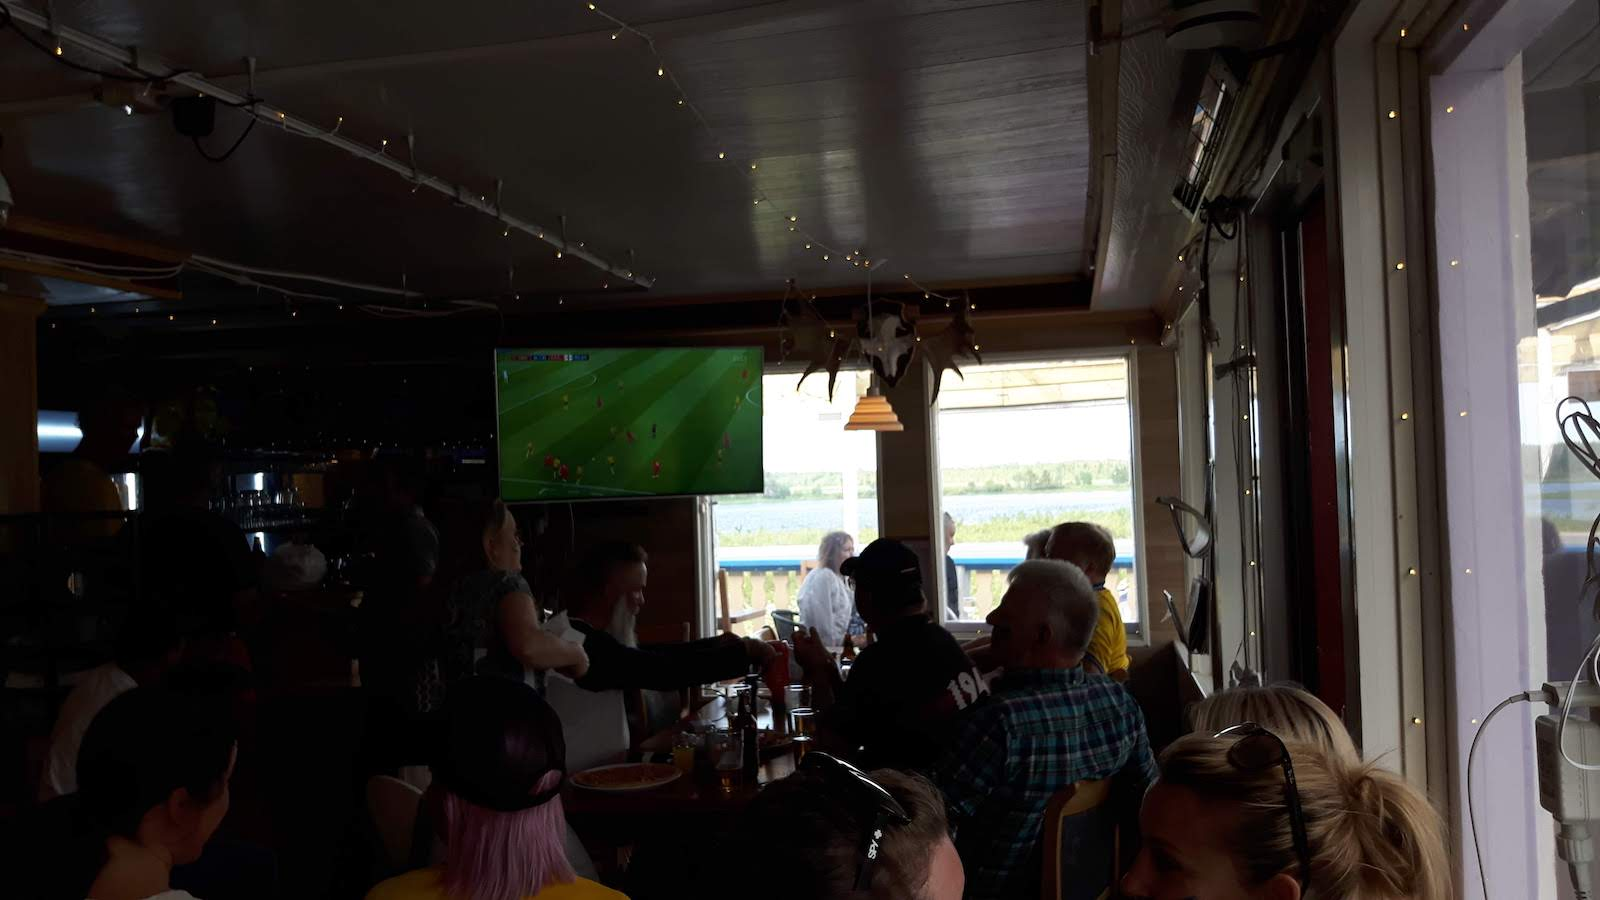 Watching the quarter final of World Cup between Sweden and England in Junosuando Sweden